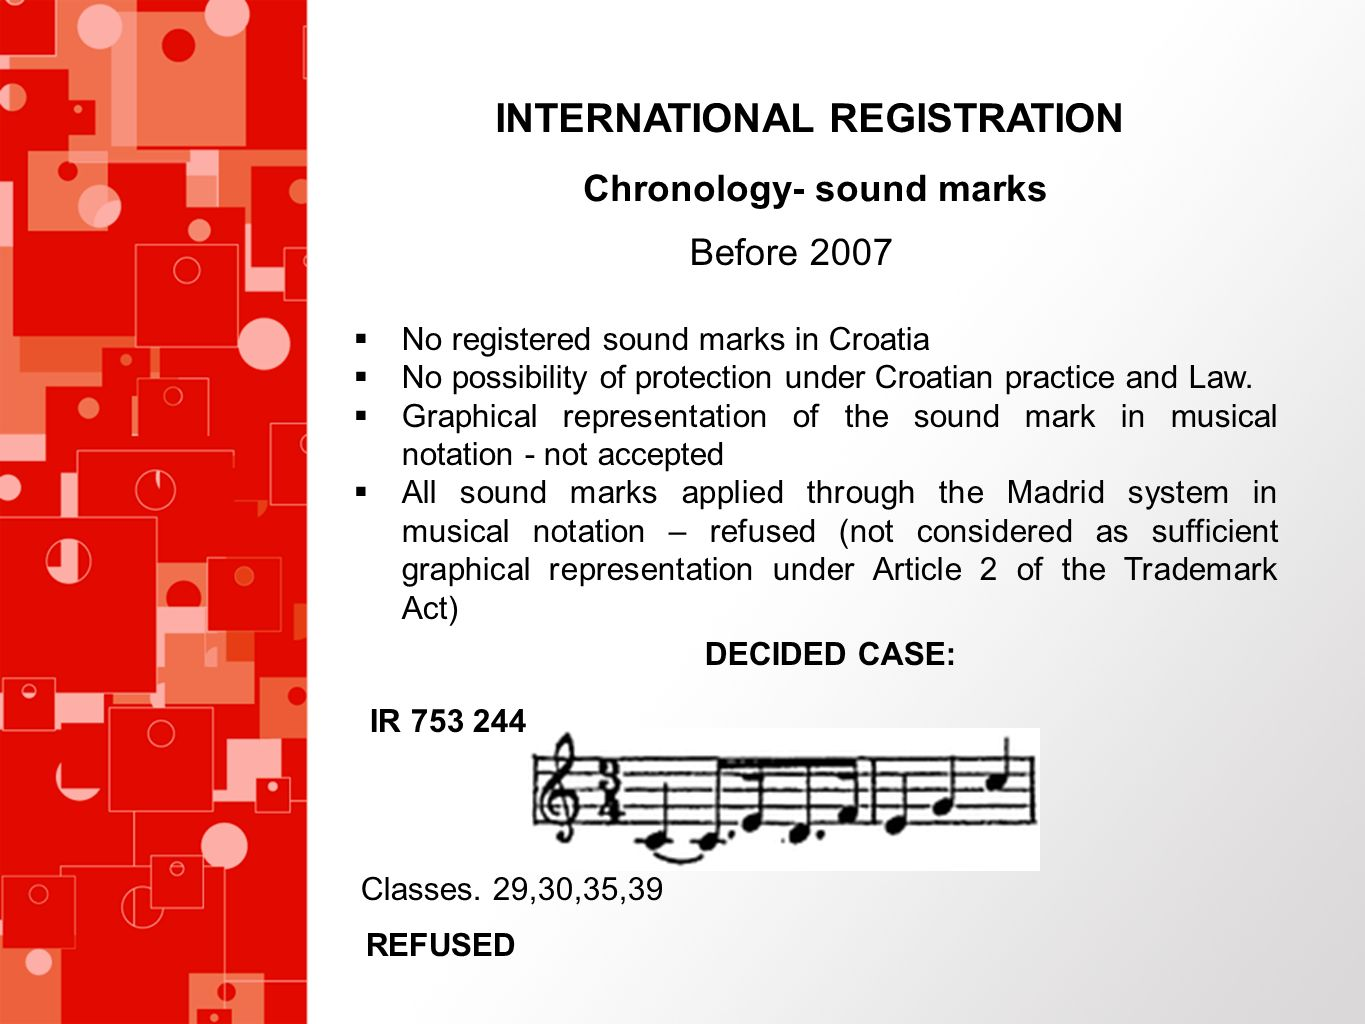 INTERNATIONAL REGISTRATION Chronology- sound marks Before 2007 No registered sound marks in Croatia No possibility of protection under Croatian practi